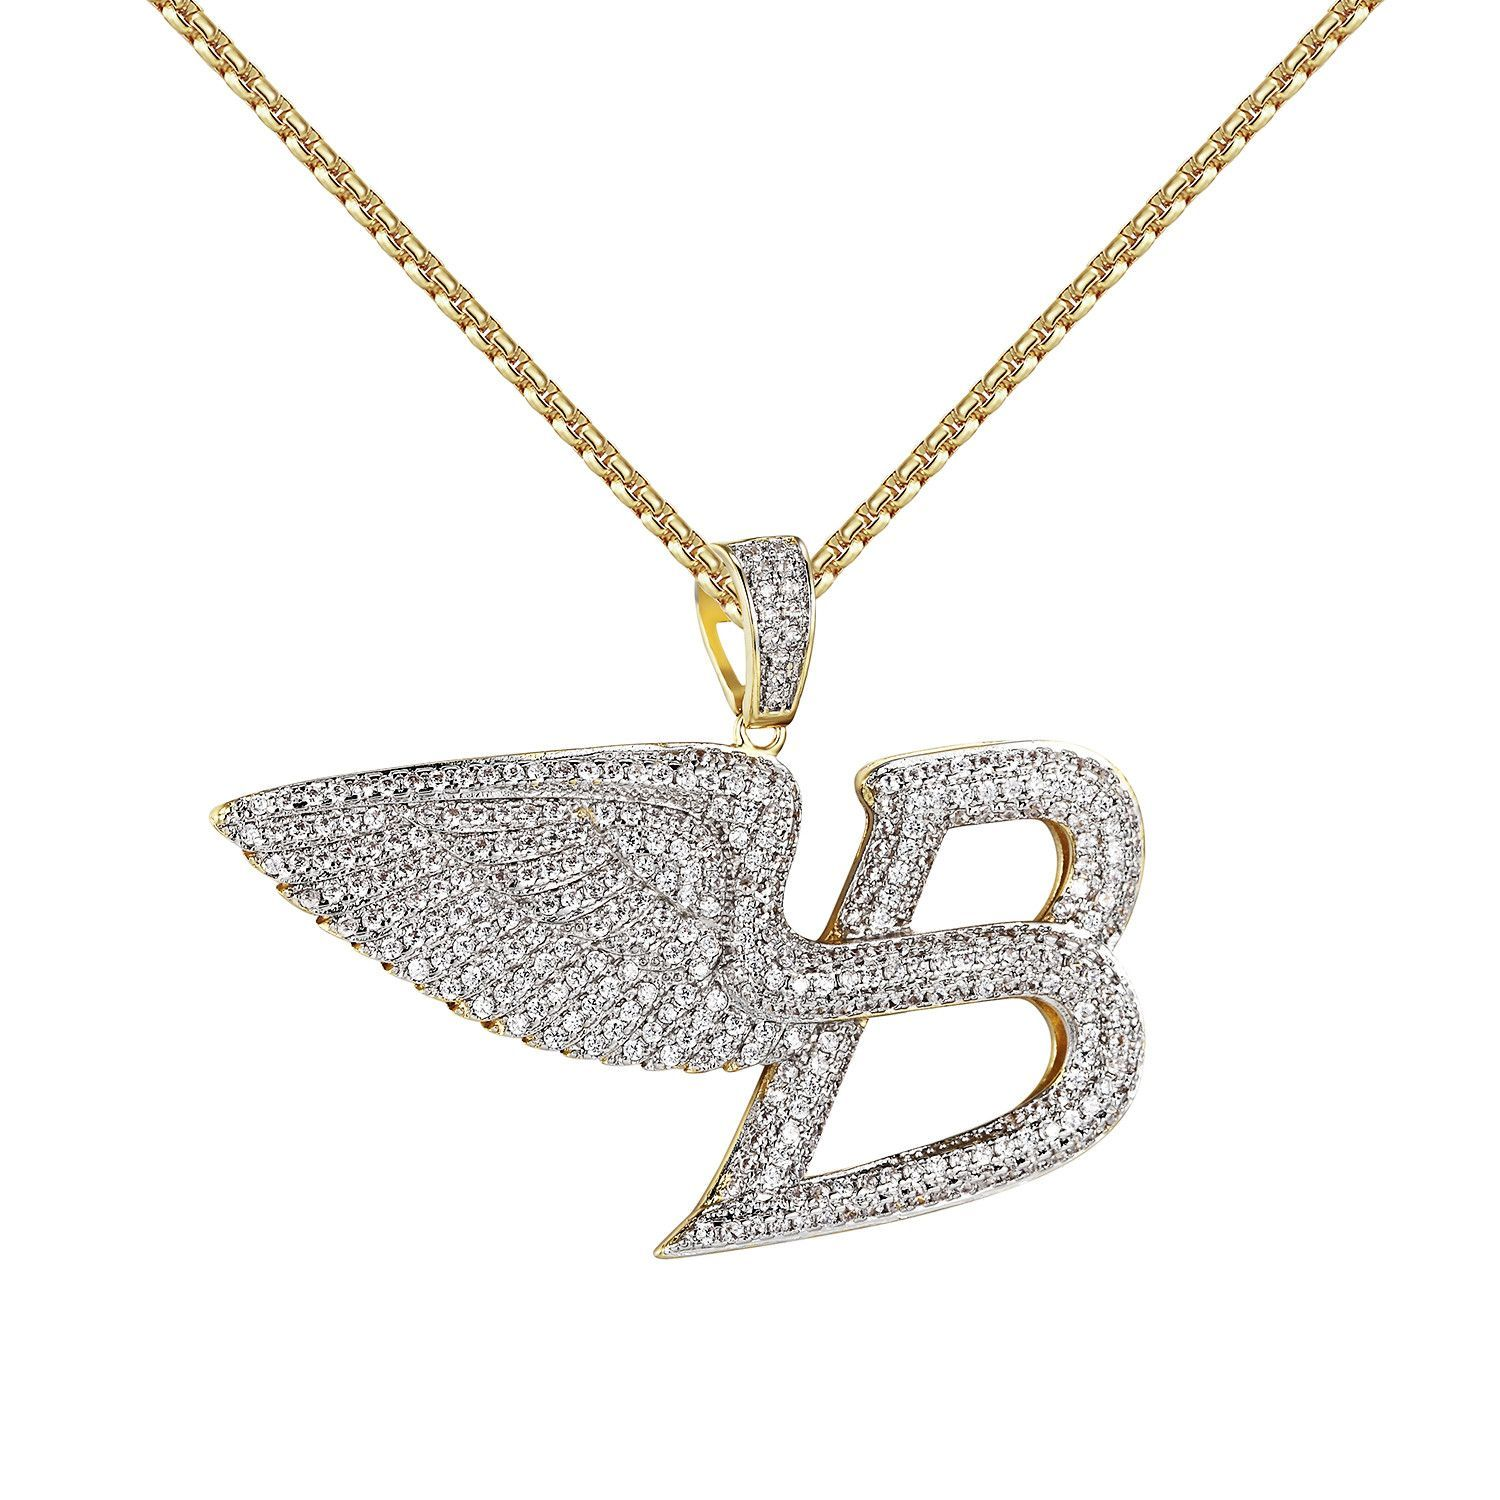 Angel wings luxury car logo b pendant iced out 14k gold finish free angel wings luxury car logo b pendant iced out 14k gold finish free 24 chain biocorpaavc Choice Image